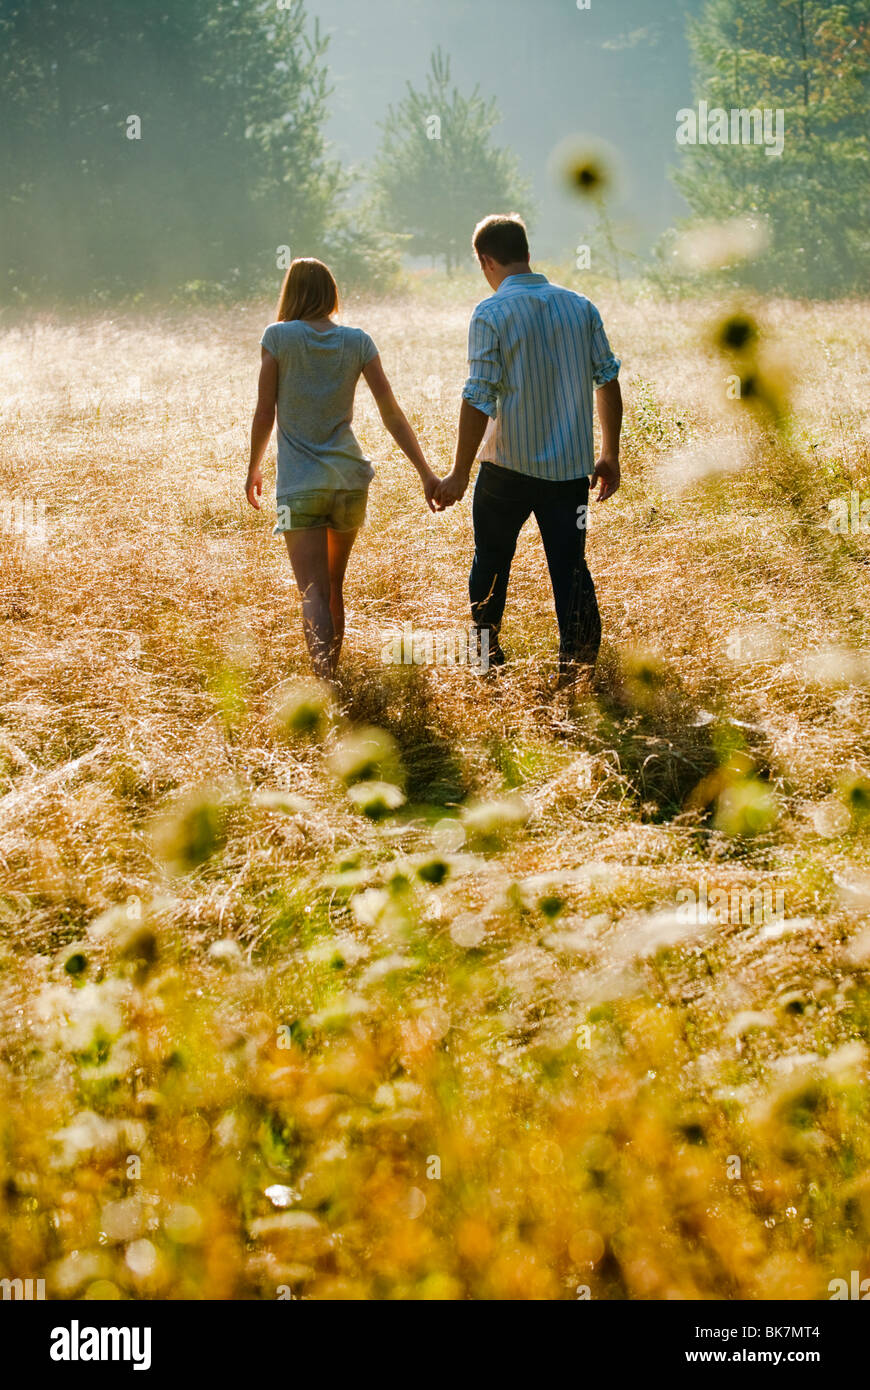 Jeune couple walking through field holding hands Photo Stock